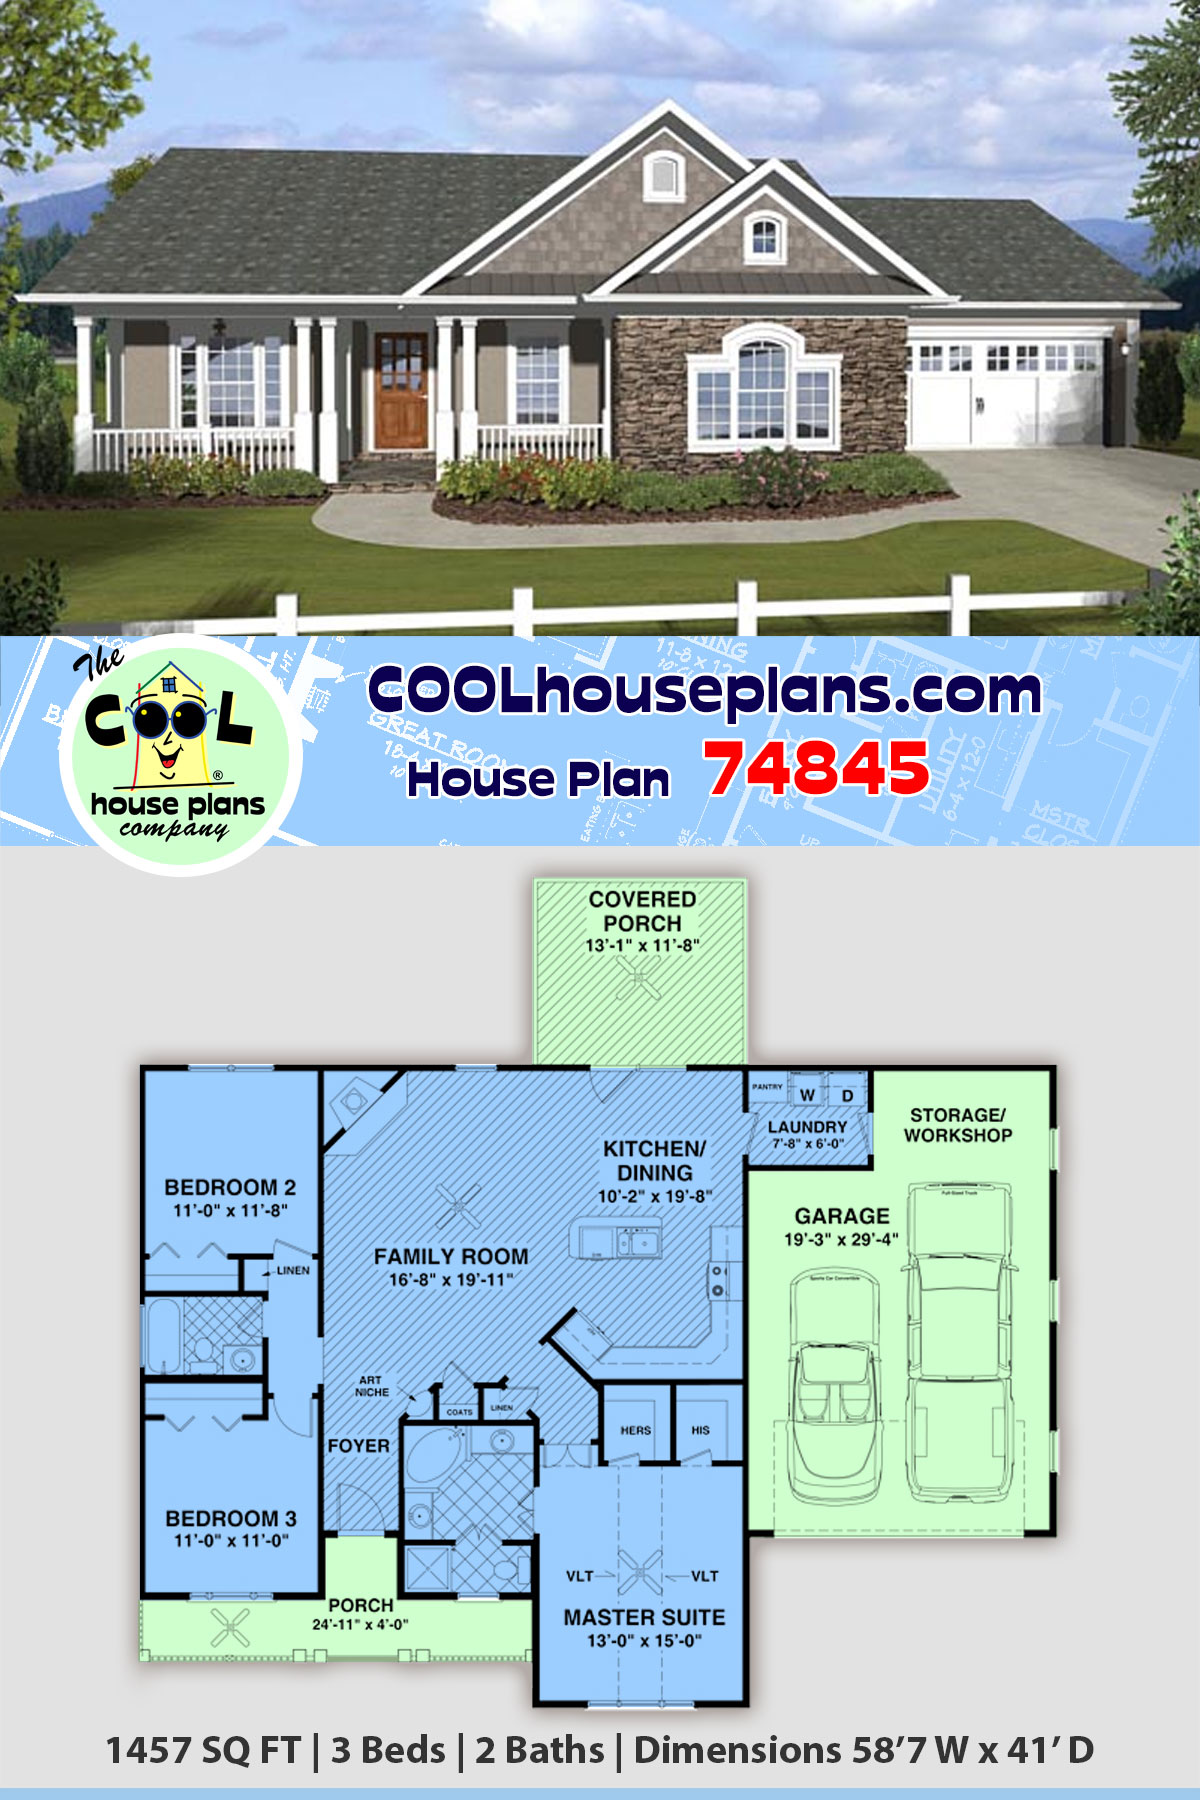 Country, Ranch, Traditional House Plan 74845 with 3 Beds, 2 Baths, 2 Car Garage